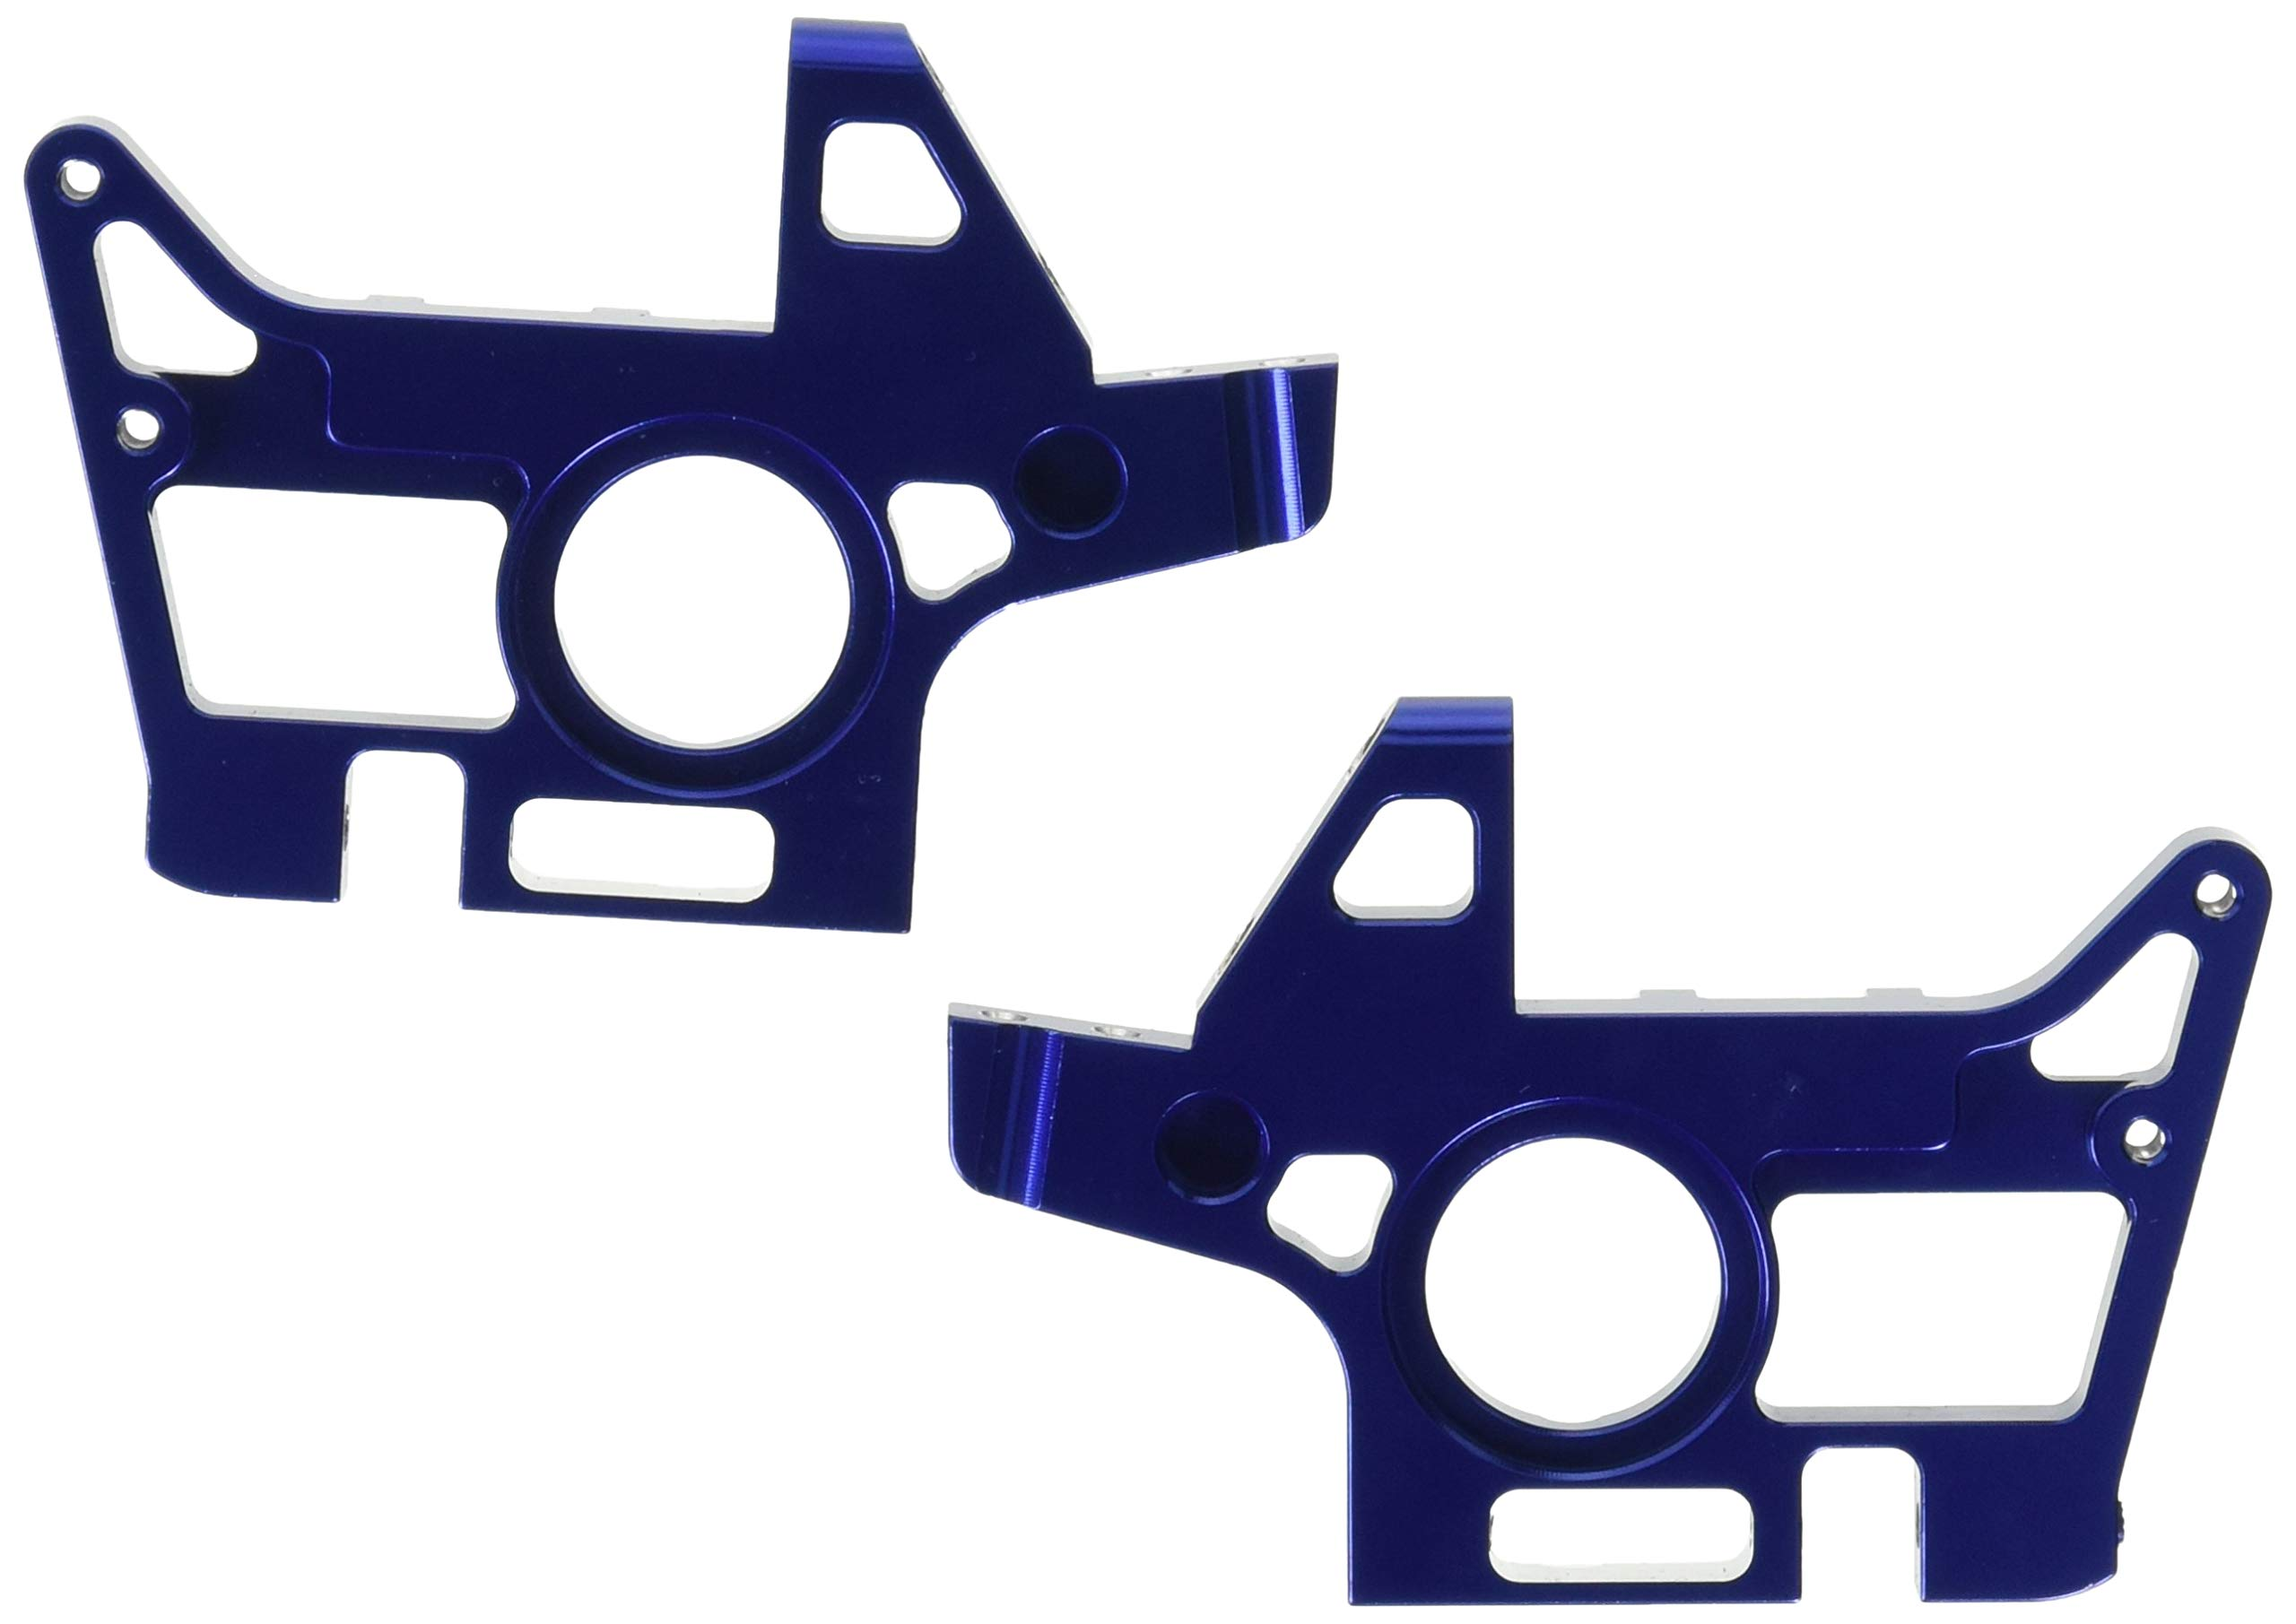 Traxxas 4930X Blue-Anodized Front Bulkheads machined from 6061-T6 Aluminum (L&R halves)